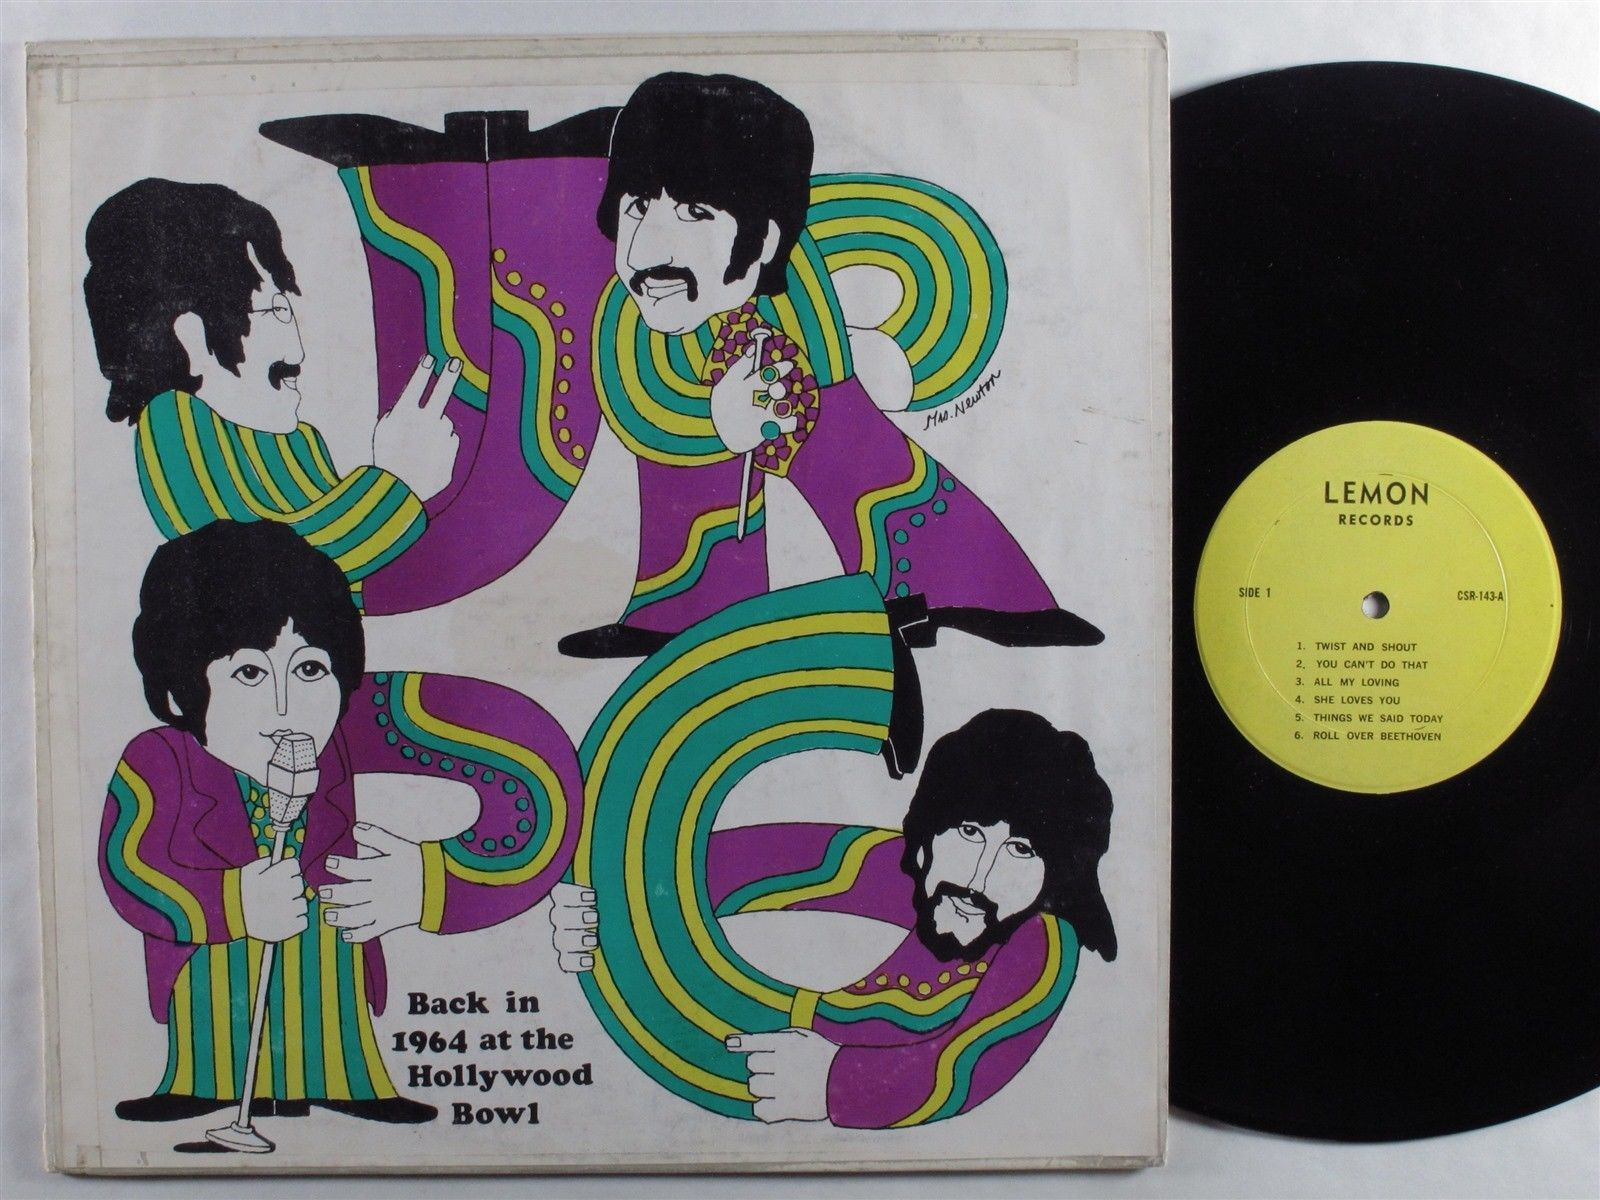 BEATLES Back In 1964 At The Hollywood Bowl LEMON LP VG+ unofficial release